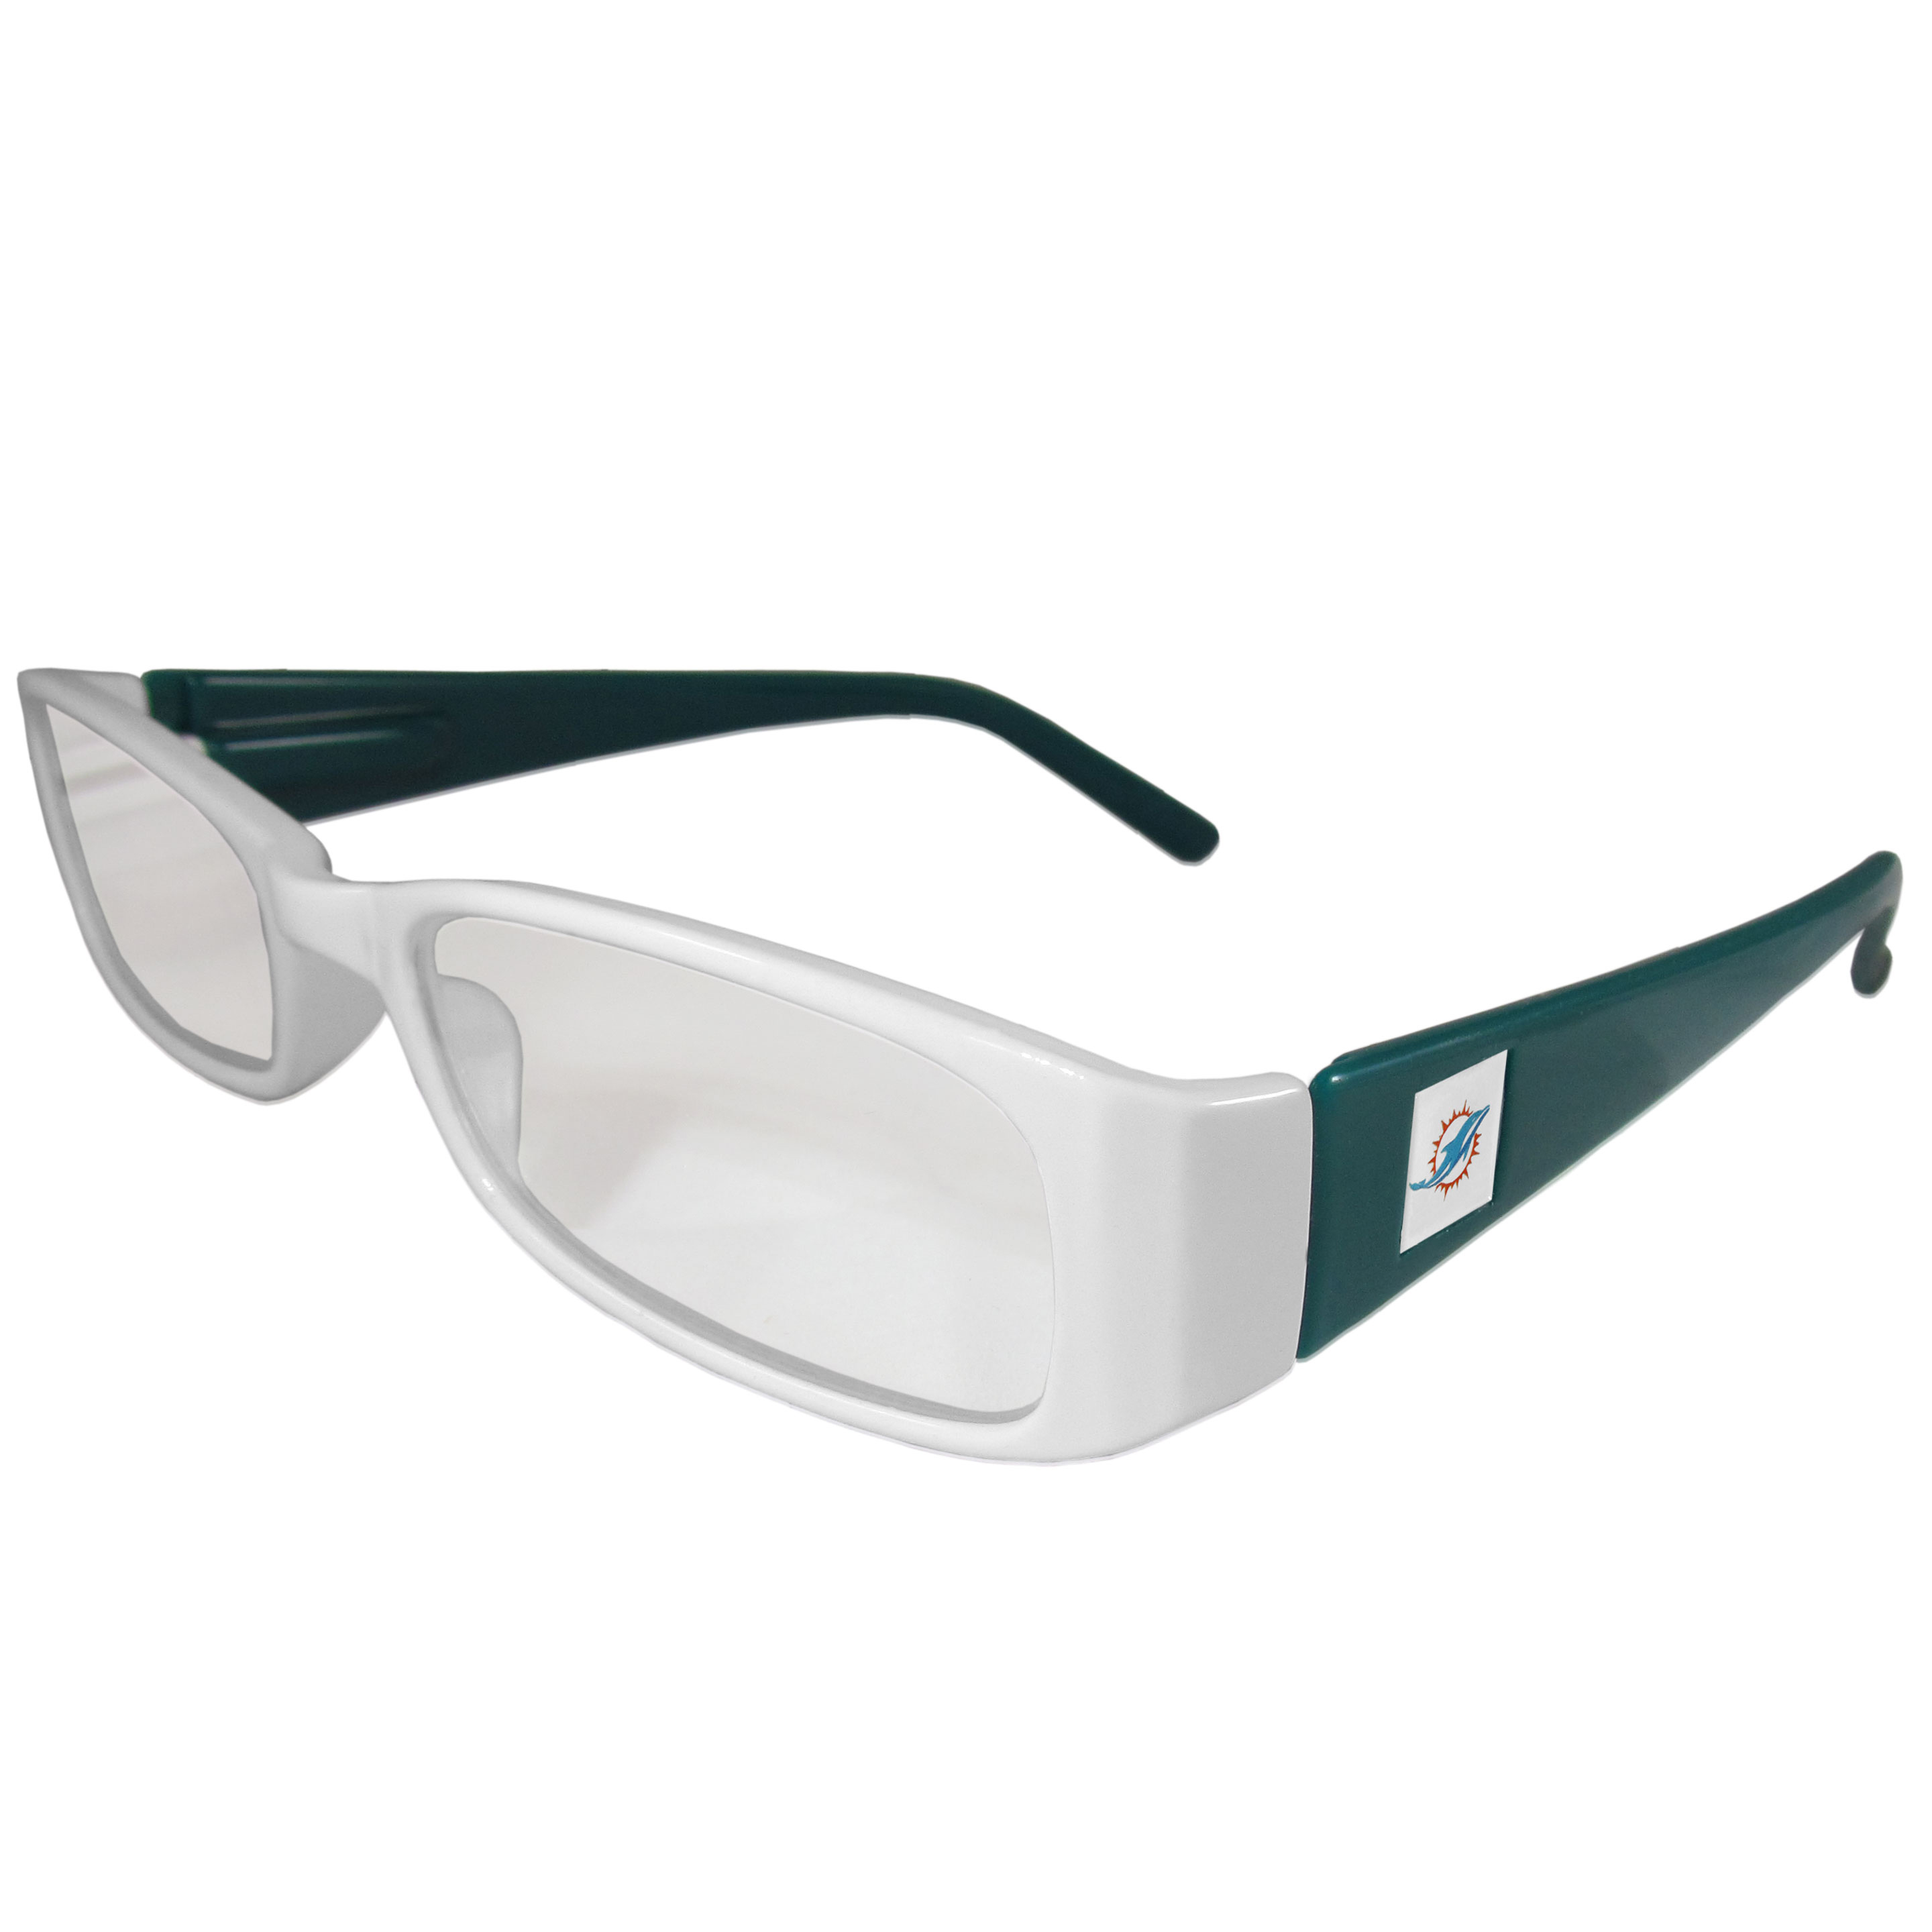 Miami Dolphins Reading Glasses +1.50 - Our Miami Dolphins reading glasses are 5.25 inches wide and feature the team logo on each arm. Magnification Power 1.50